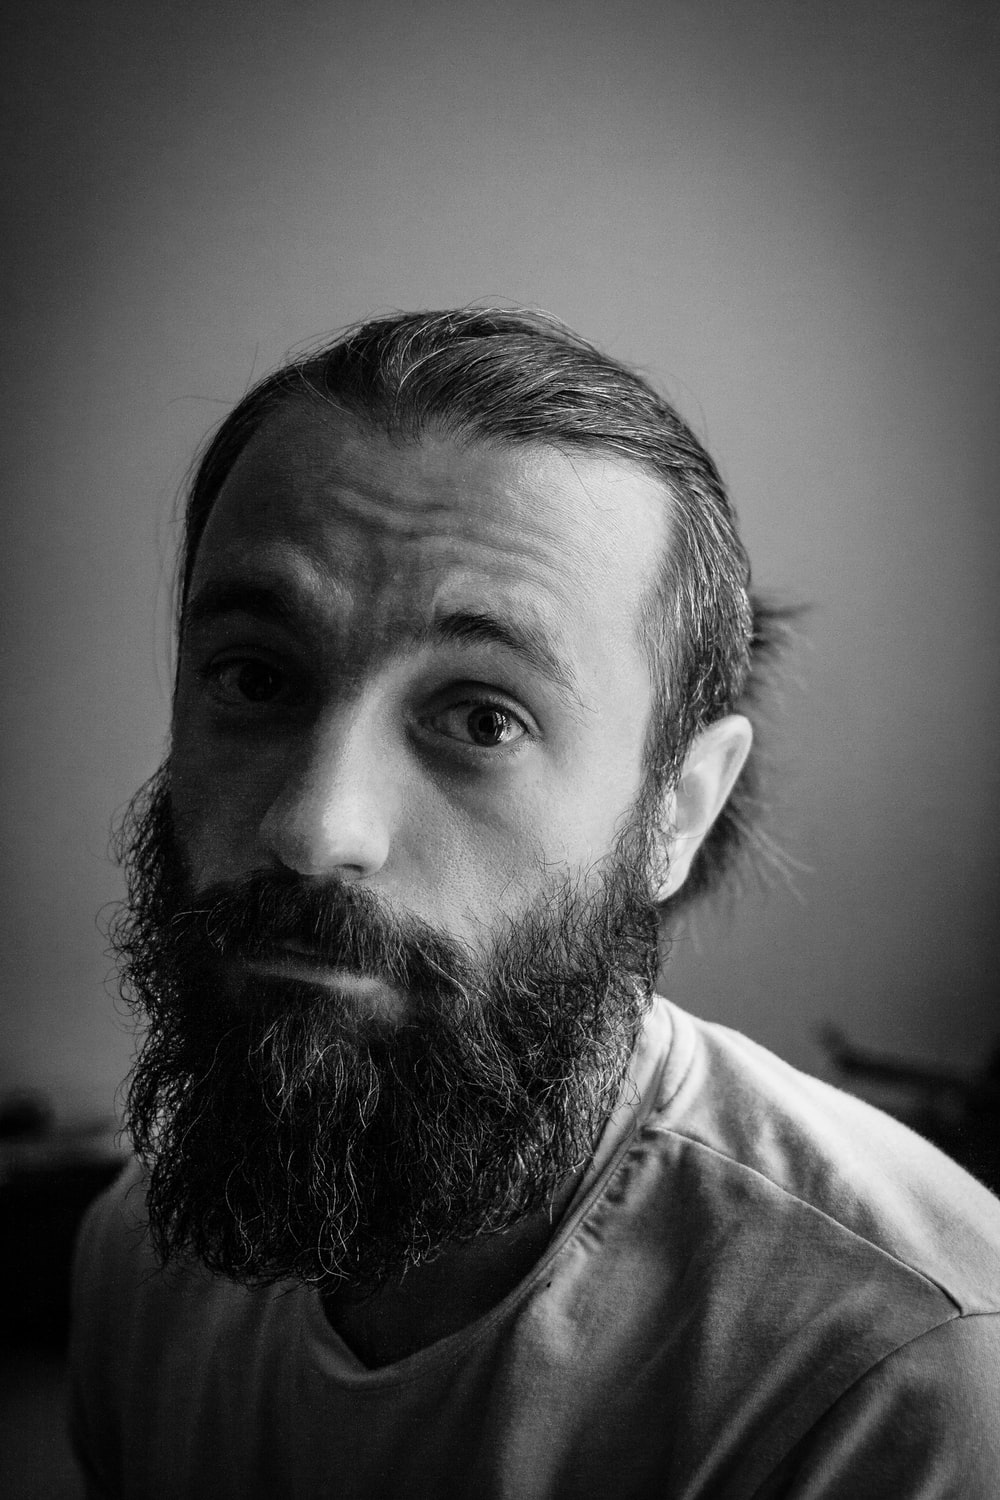 grayscale photography of man wearing shirt